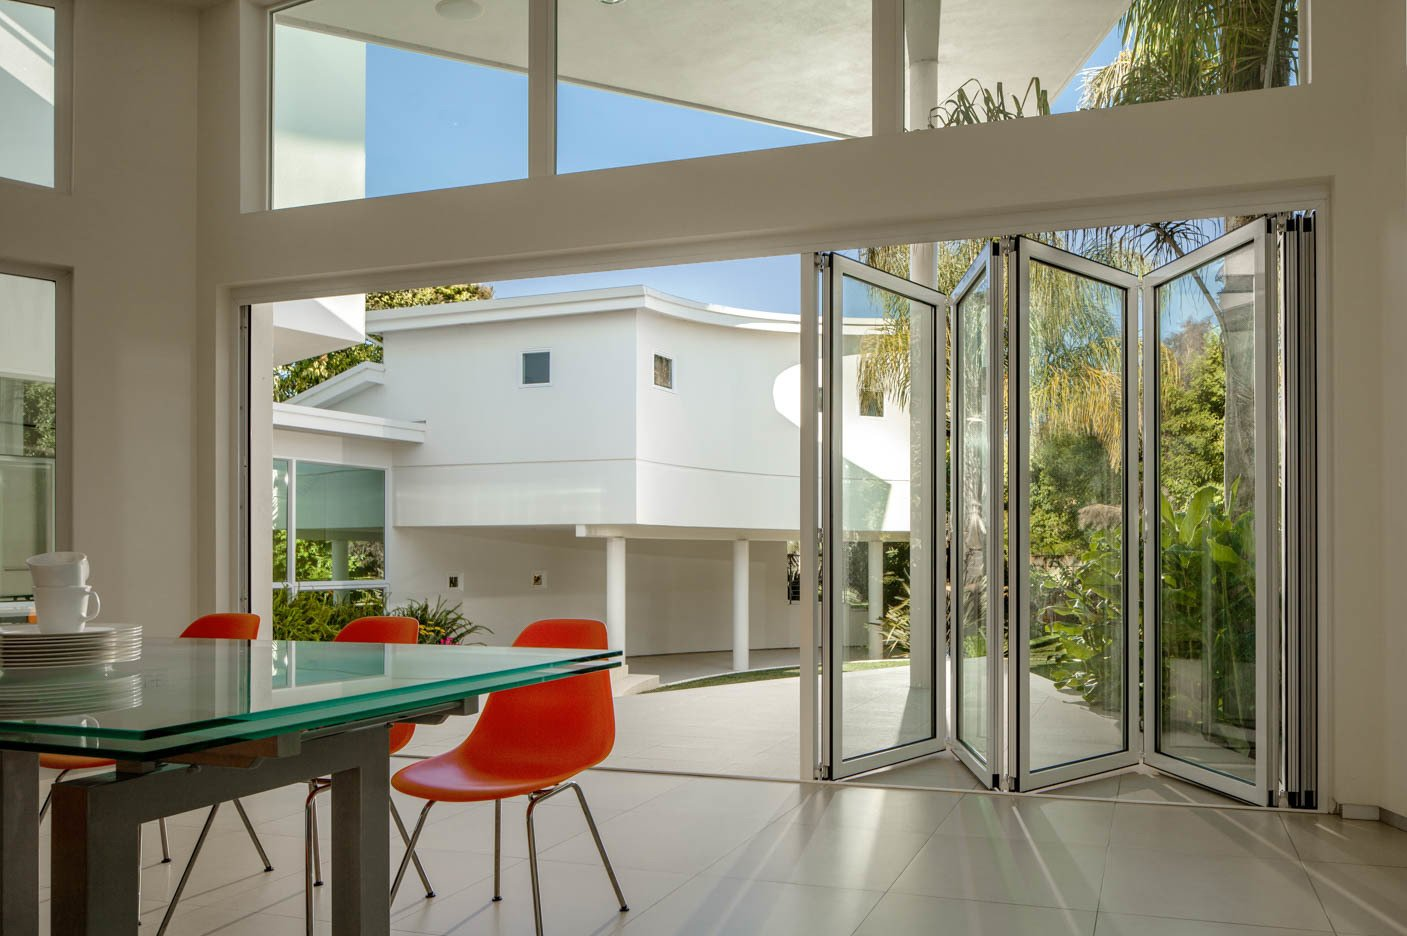 Open floor plan, house around a patio, large windows and glass doors and a sense of outdoors in the indoor (Eichler principle). Tagged: Back Yard and Dining Room.  Contemporary Eichler Offspring by Agnieszka Jakubowicz